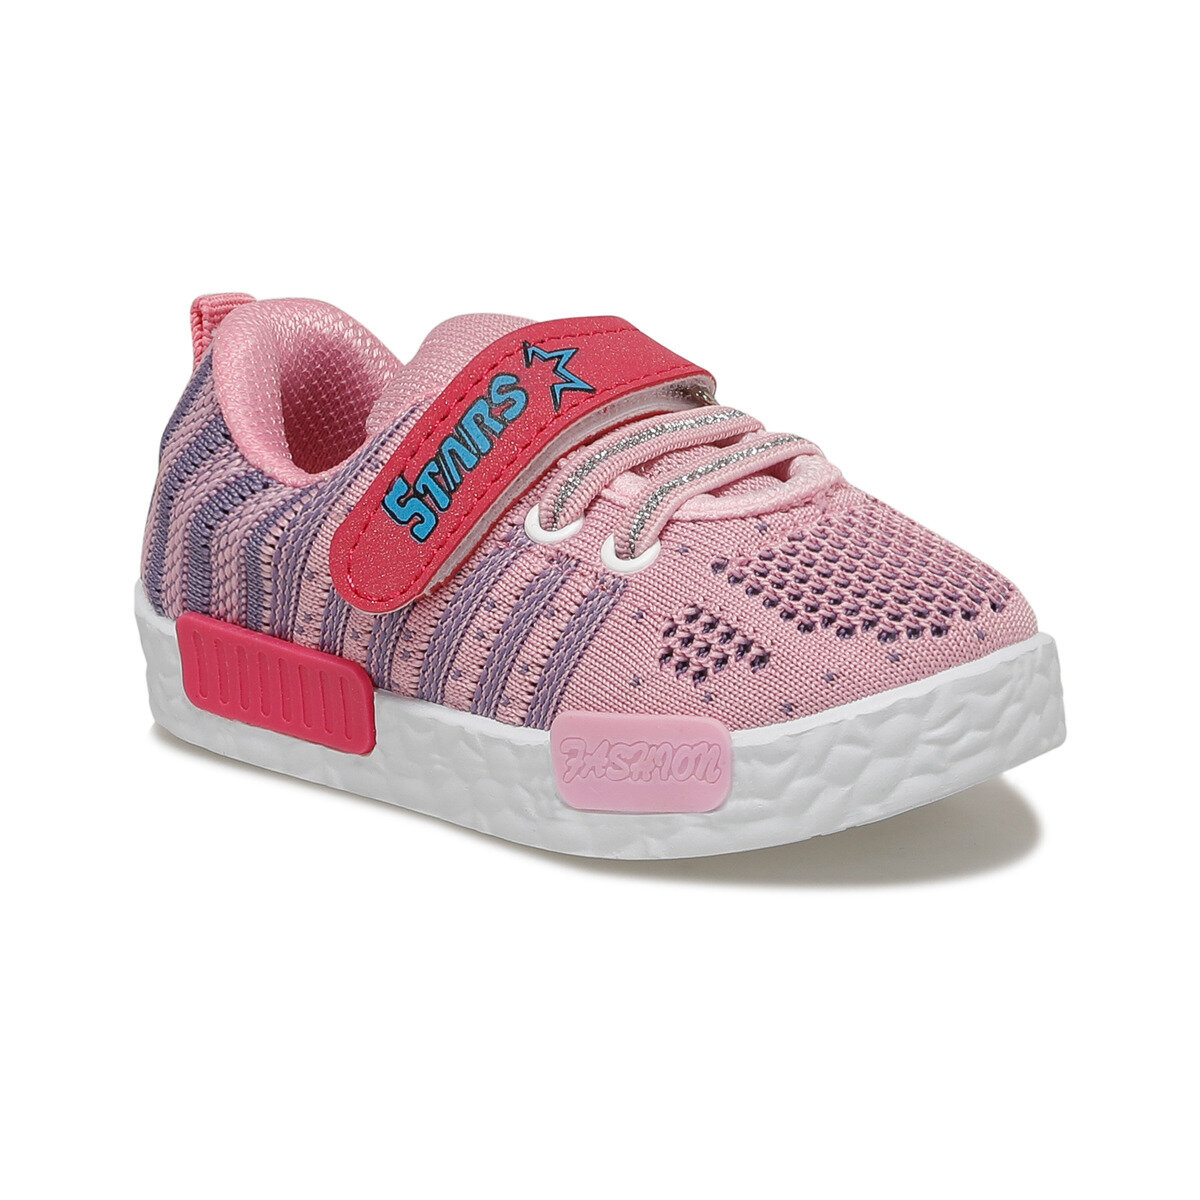 FLO 91.511030.I Pink Female Child Shoes Polaris